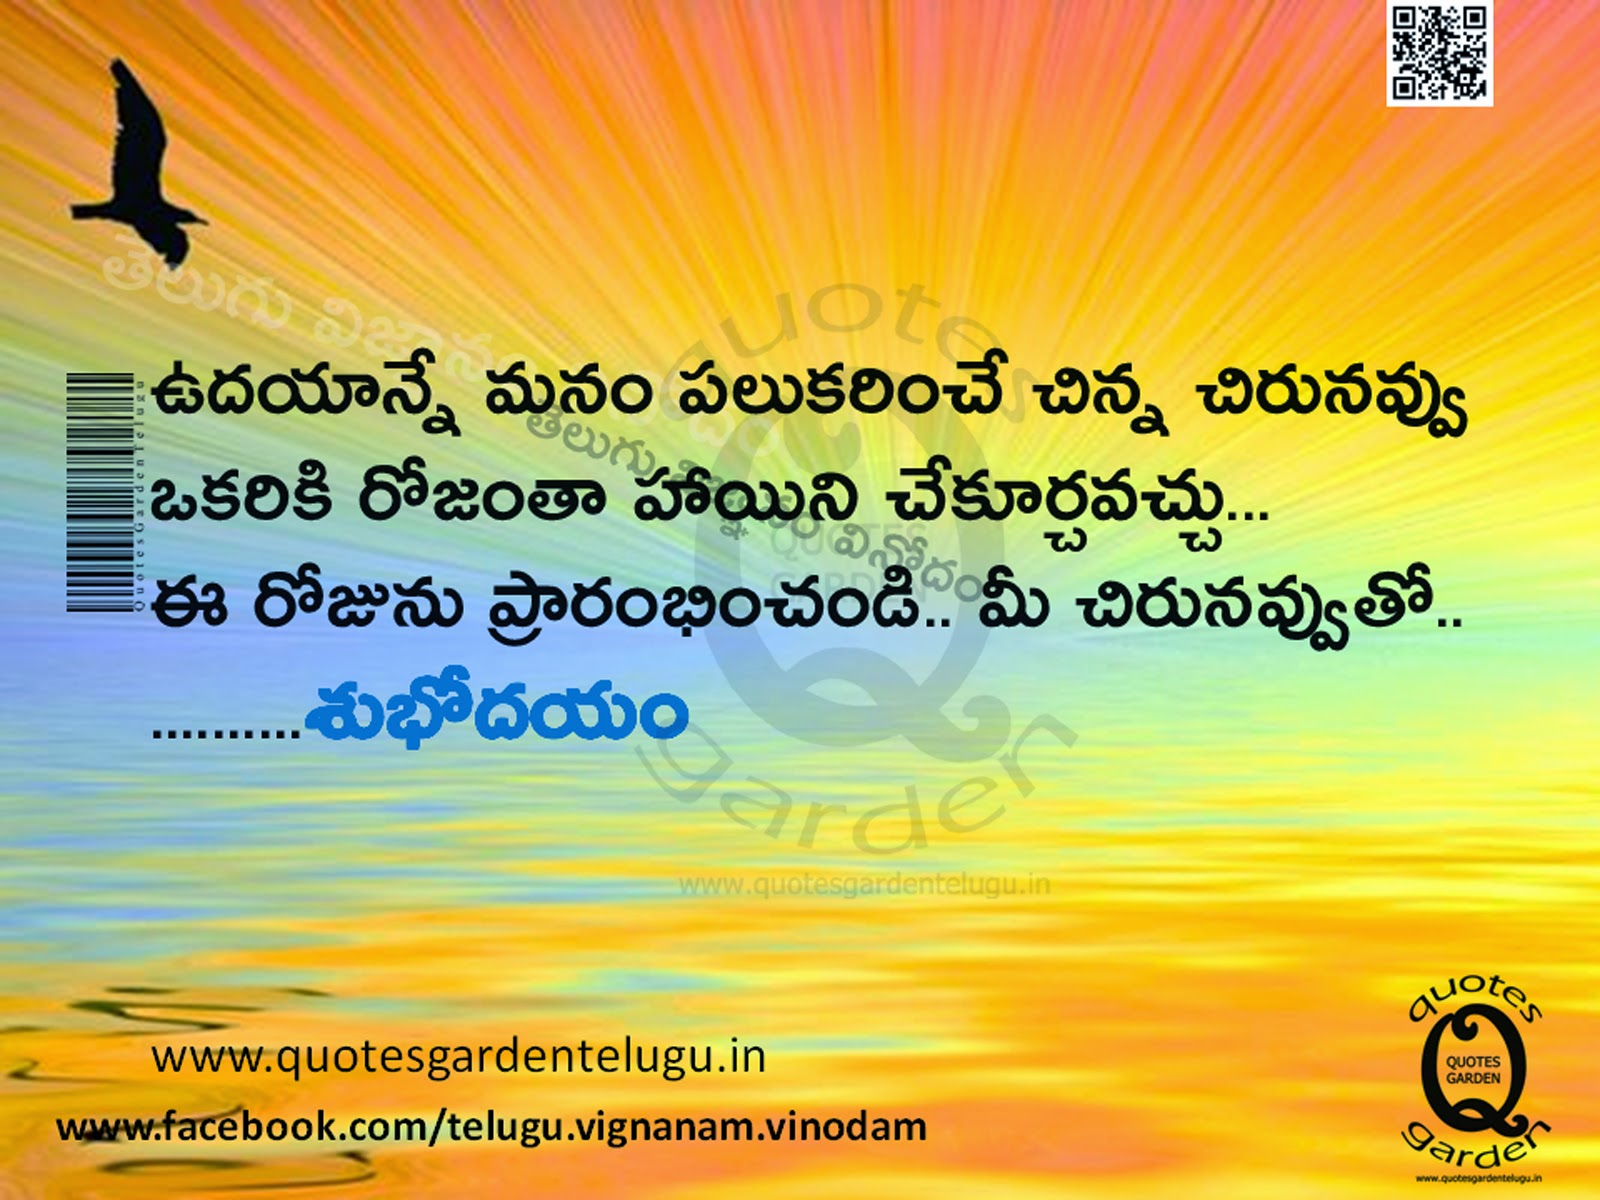 Good morning quotes - inspirational Life Quotes with beautiful awesome images in telugu